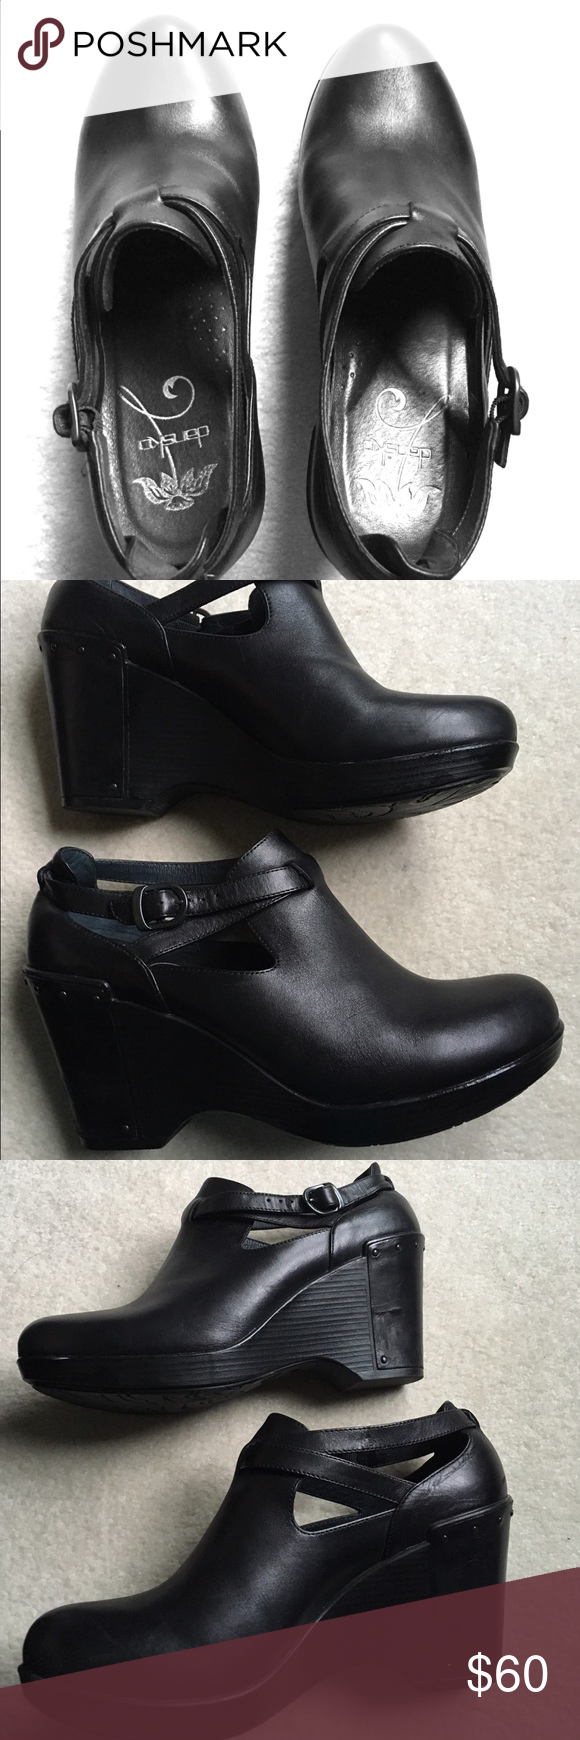 b4a472cda2 Dansko Franka wedge heels Never worn heels. Black leather. Euro size is 41  but I wear a 9 1/2 typically. Dansko Shoes Wedges